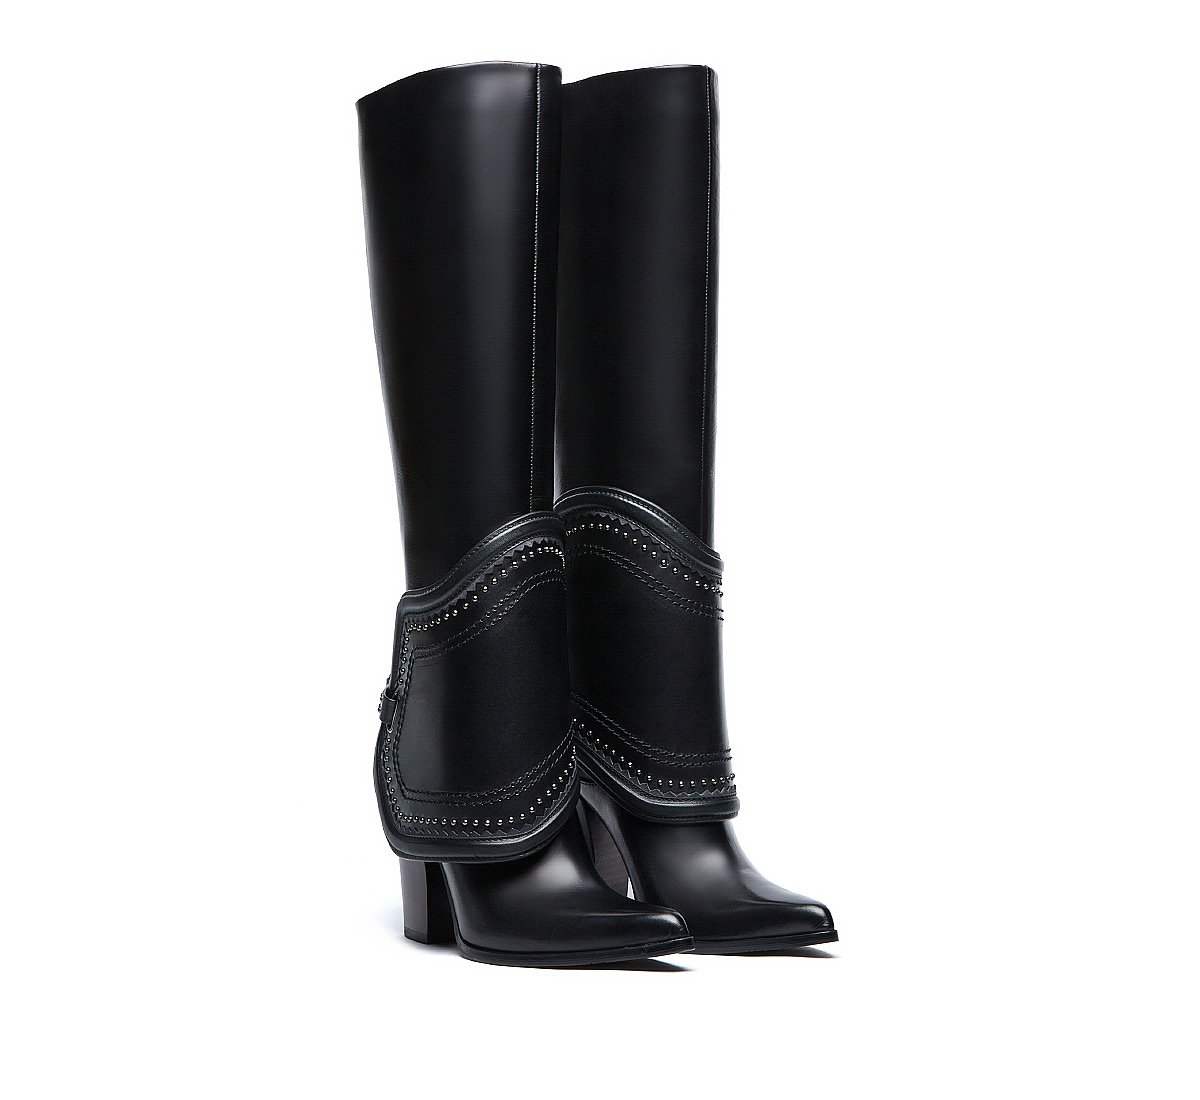 Saddle boots in luxury calf leather